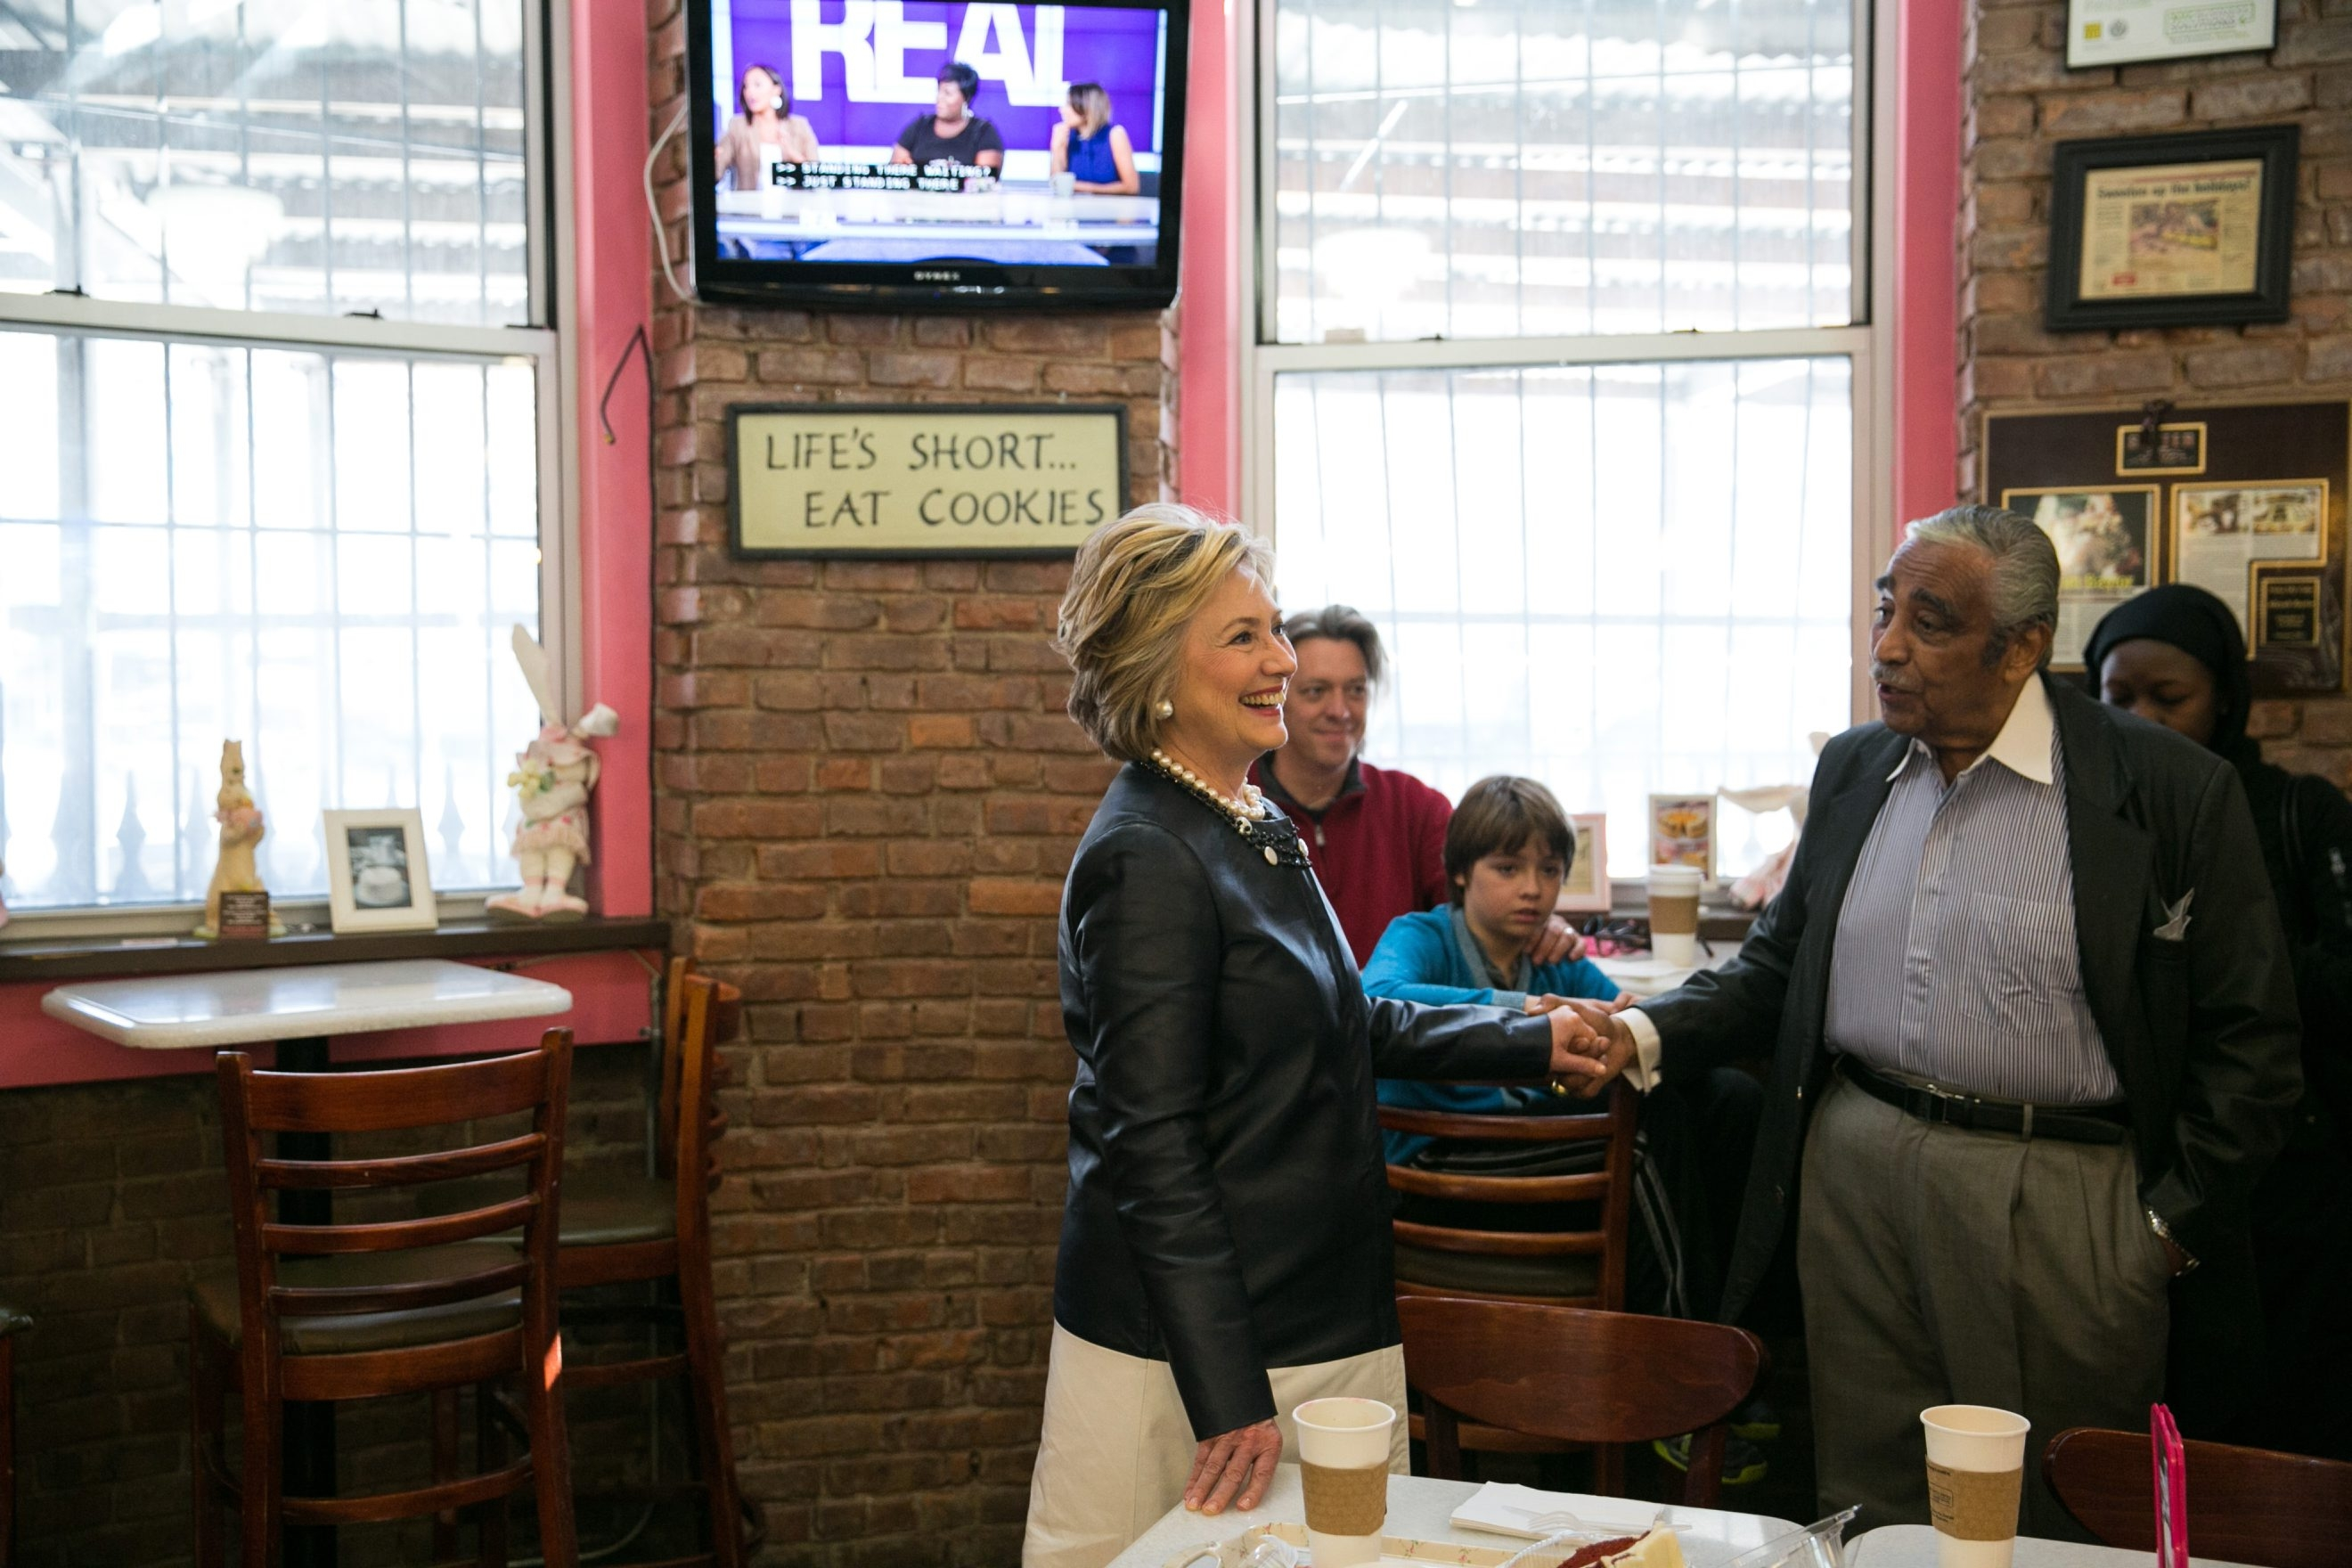 Presidential hopeful Hillary Clinton greets Rep. Charles Rangel, D-N.Y., while campaigning at Make My Cake bakery in Harlem.